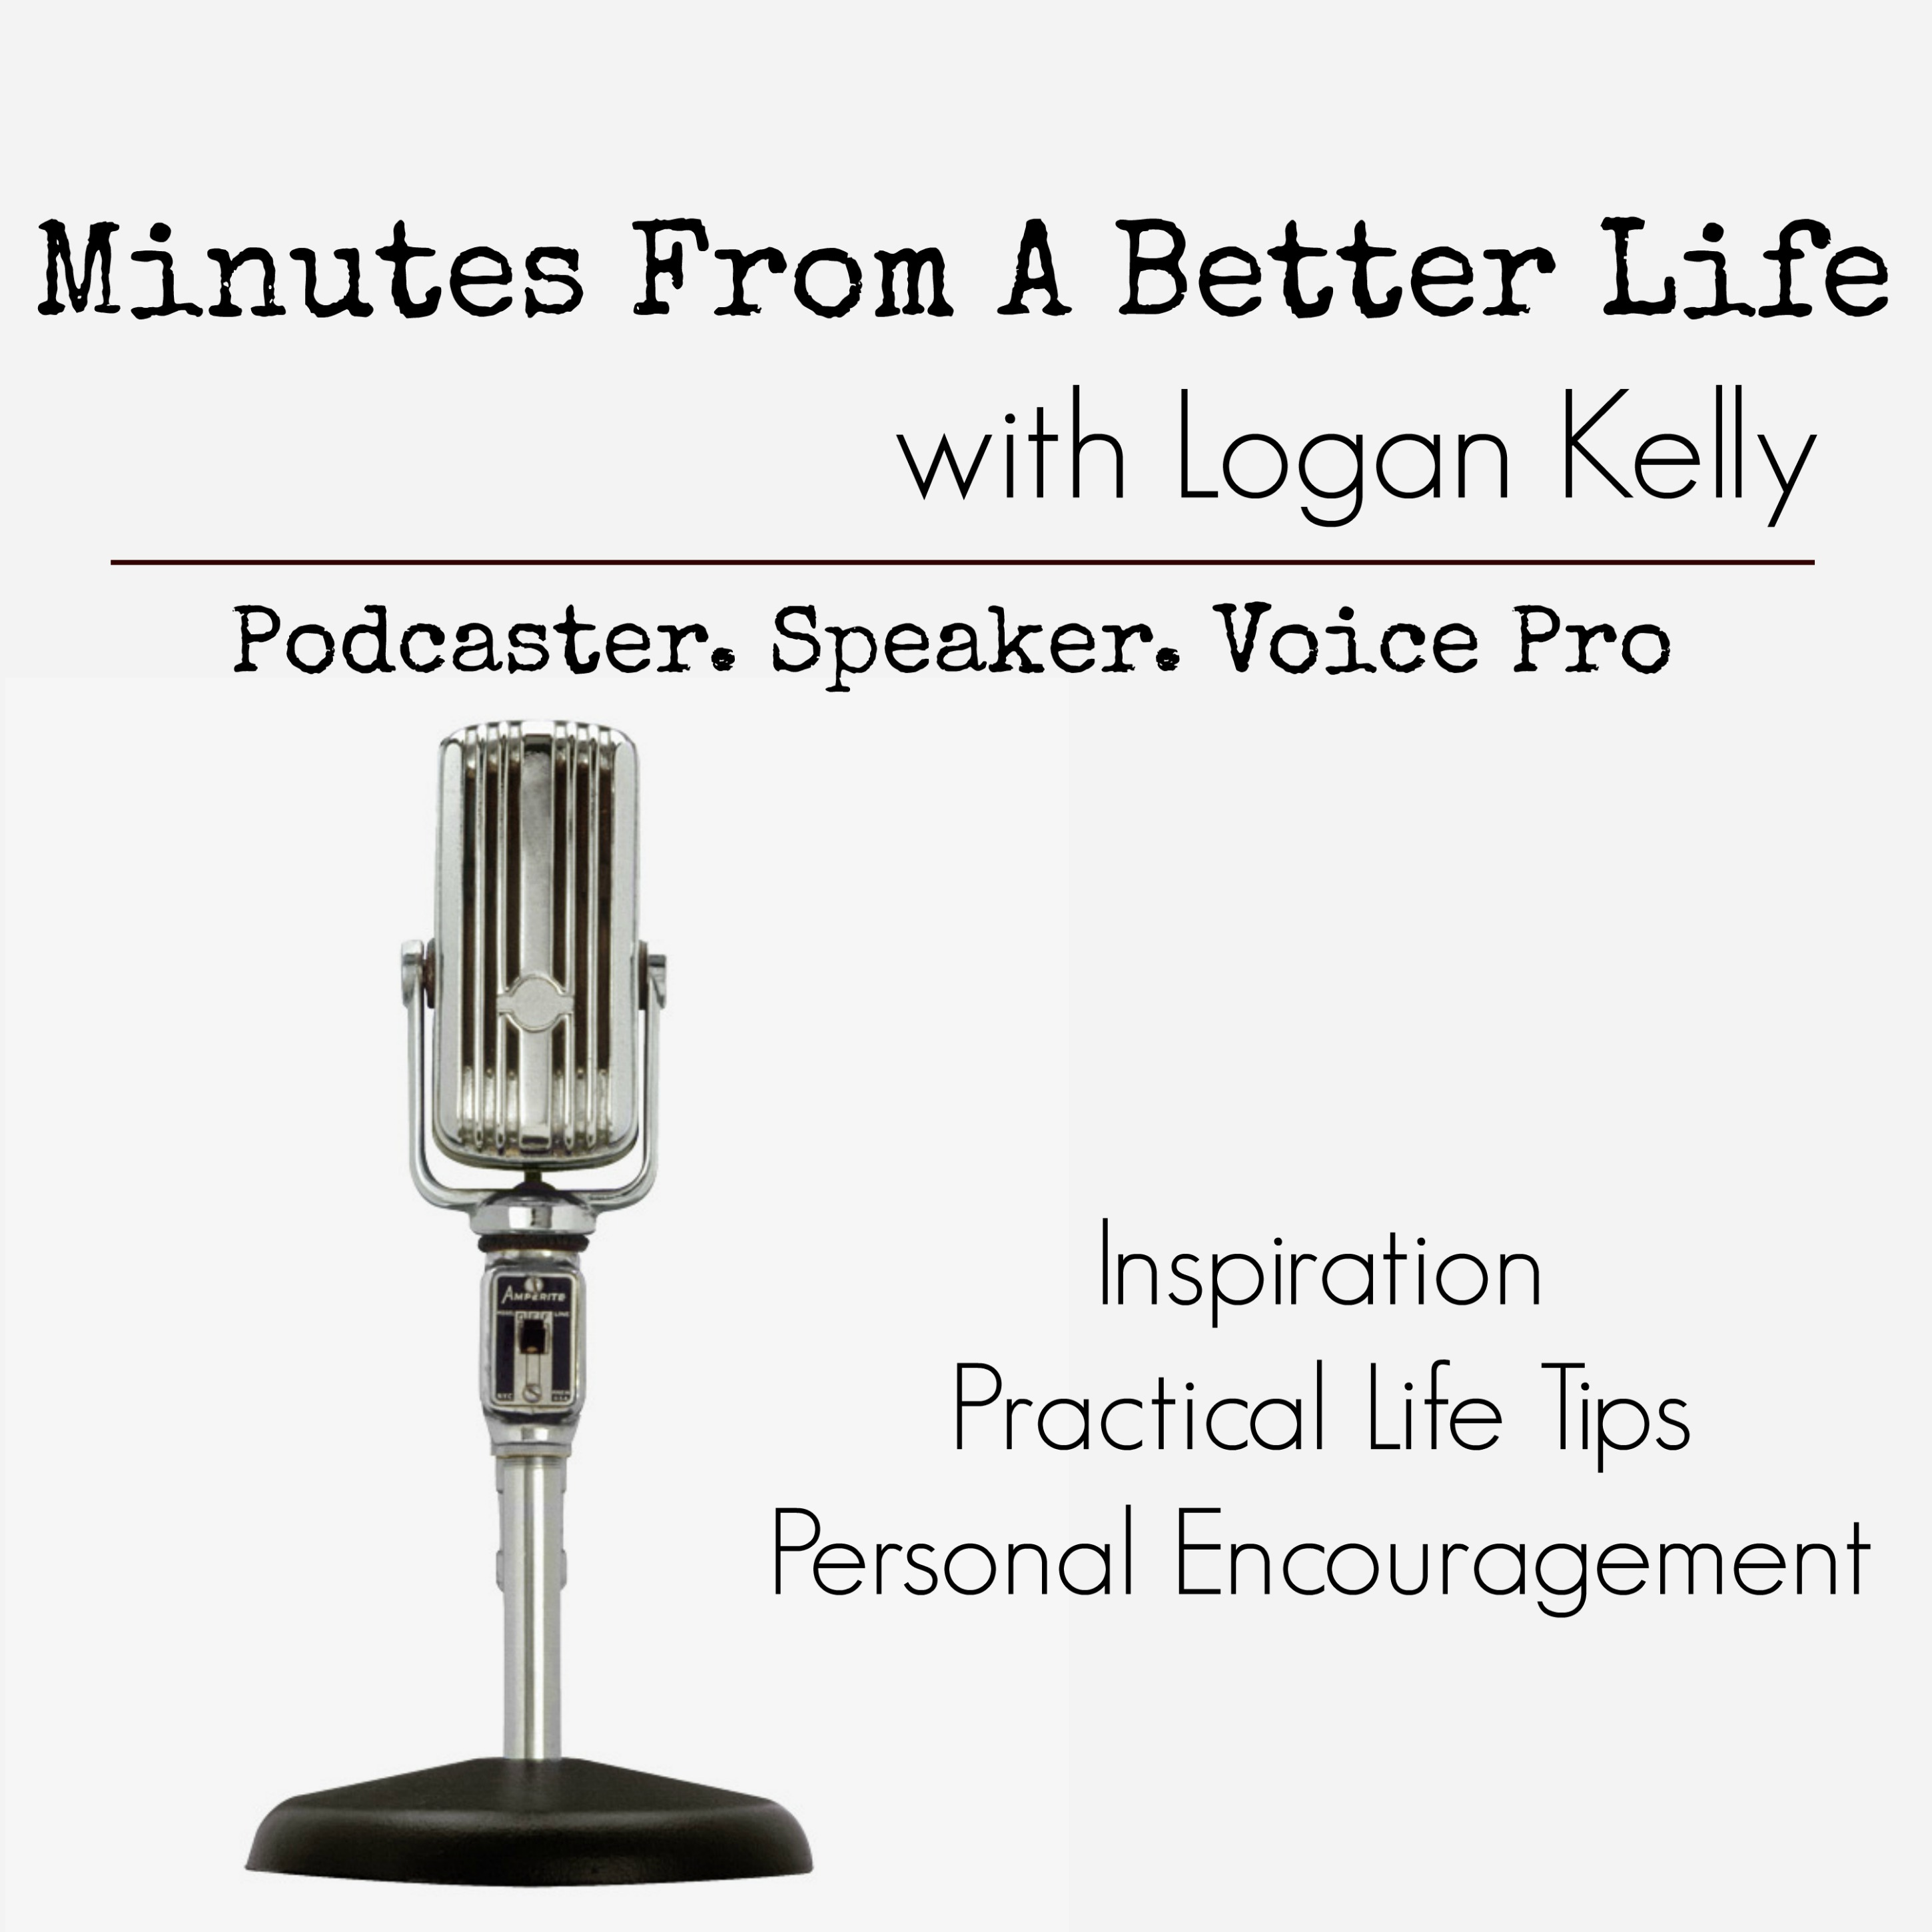 Minutes From a Better Life with Logan Kelly show art